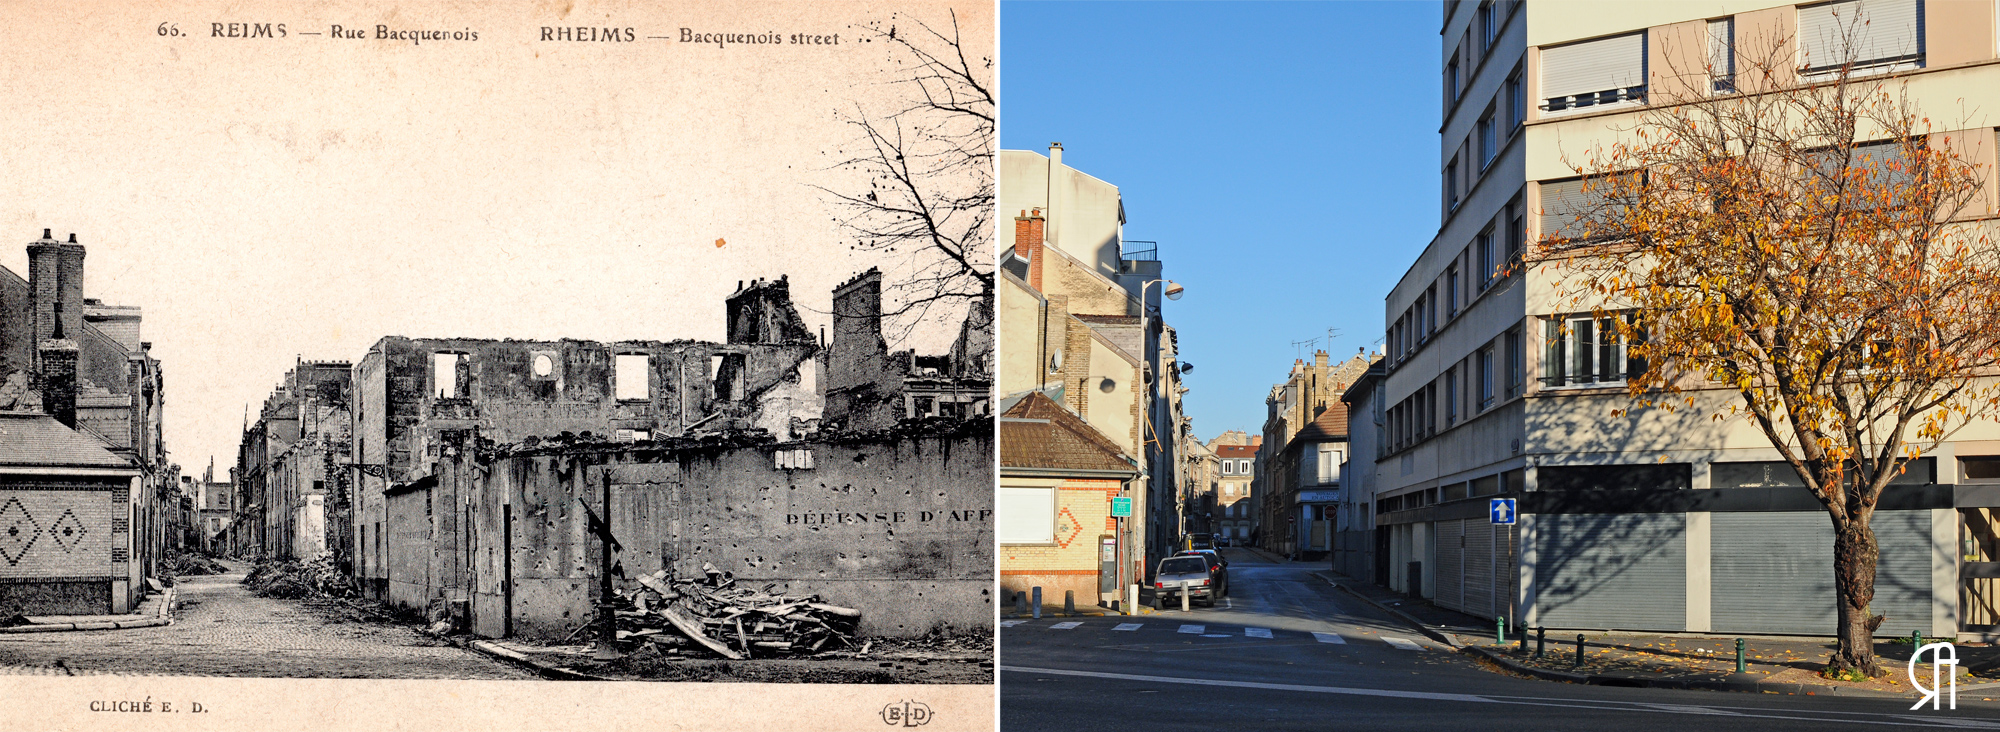 Rue Bacquenois